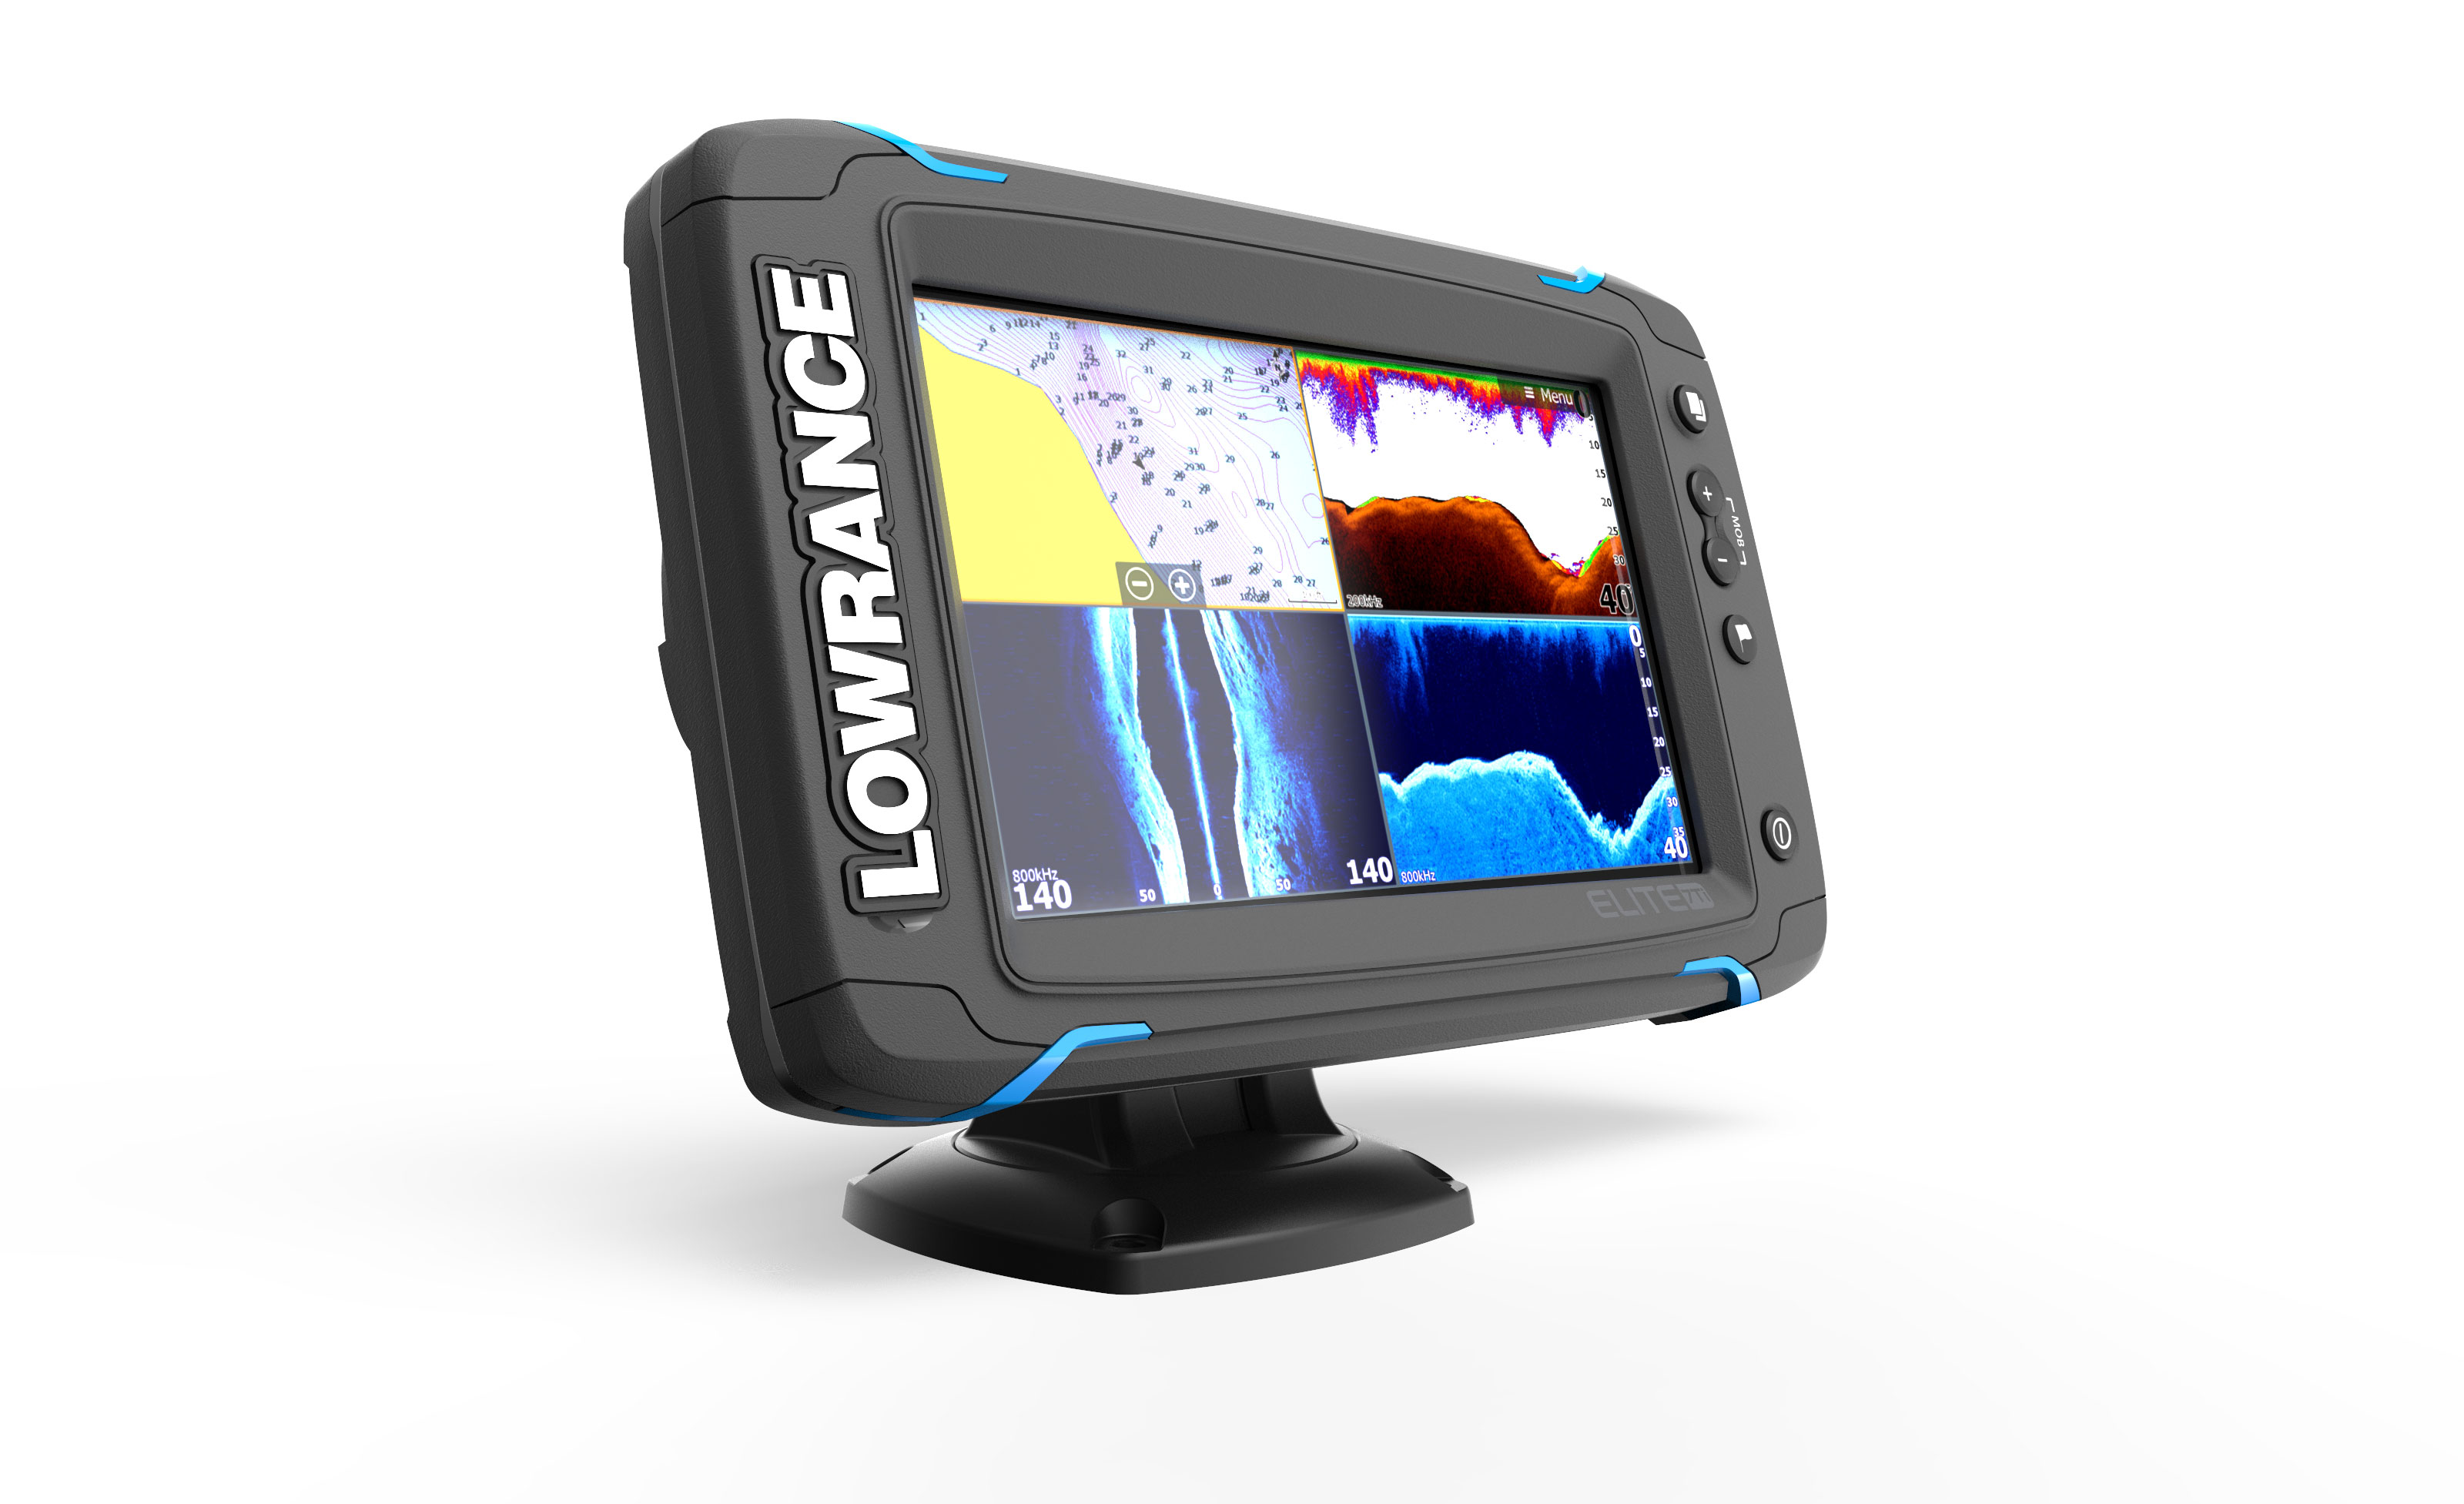 How to install the new Lowrance Elite Ti software update V 3 0